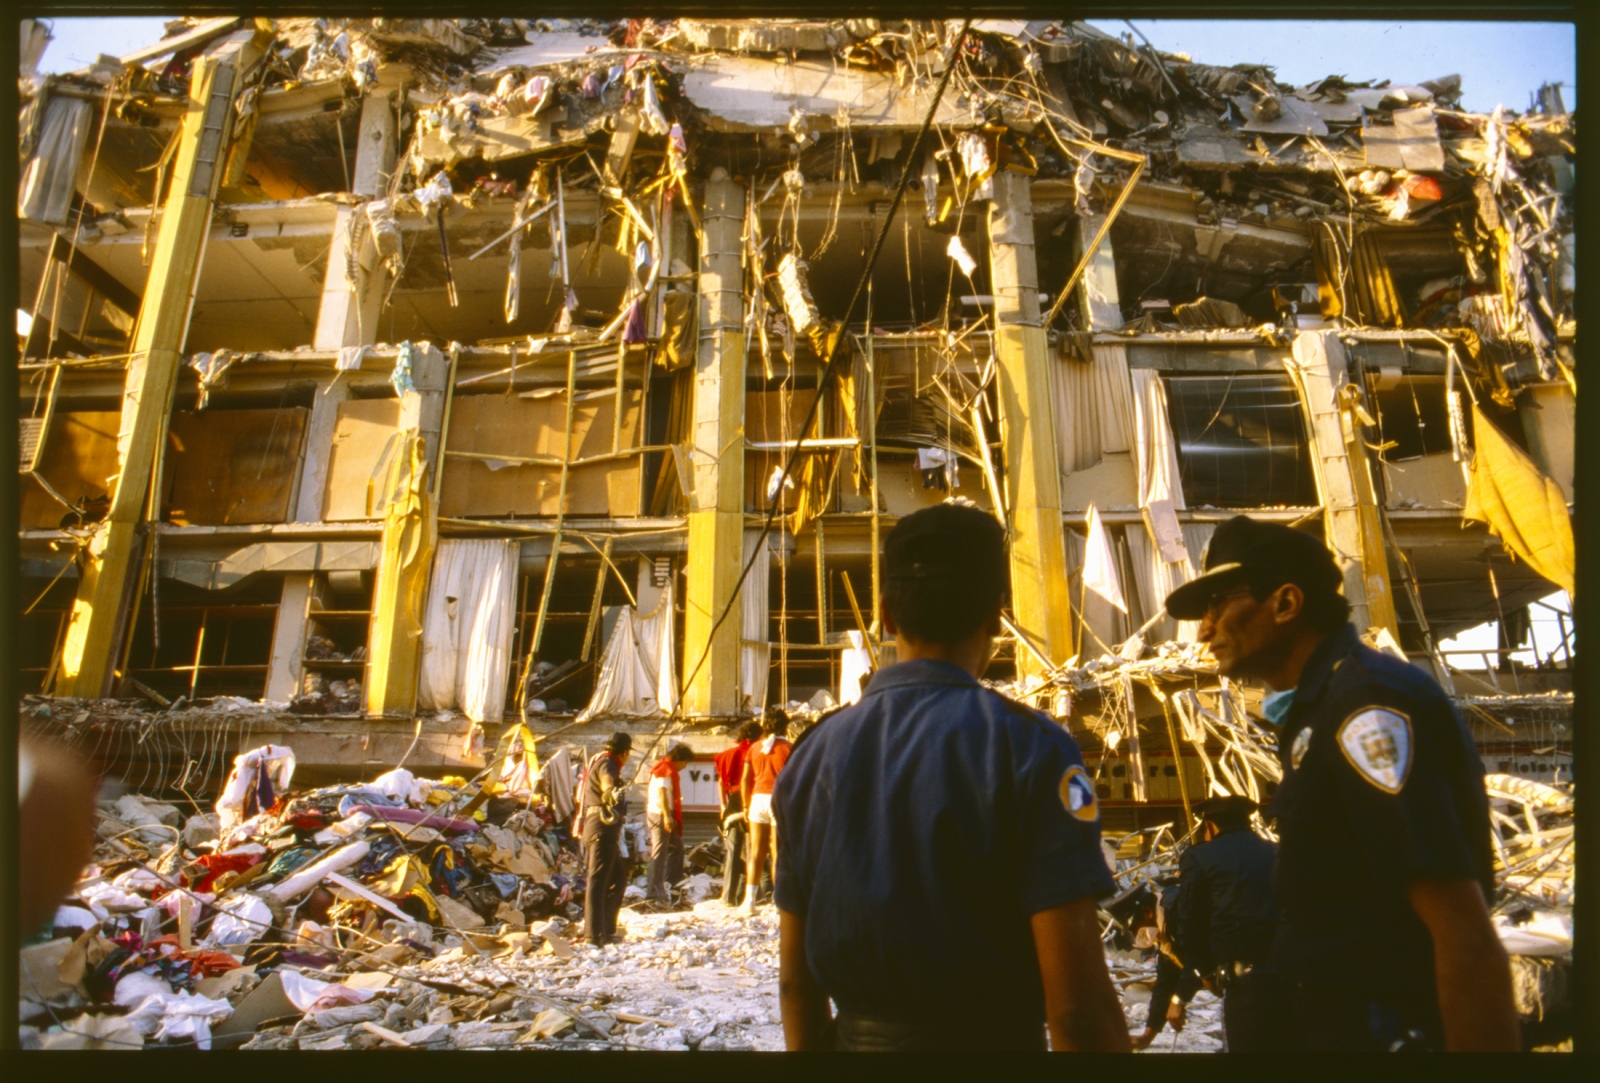 Destruction from earthquake,Mexico City, Mexico. 1986.